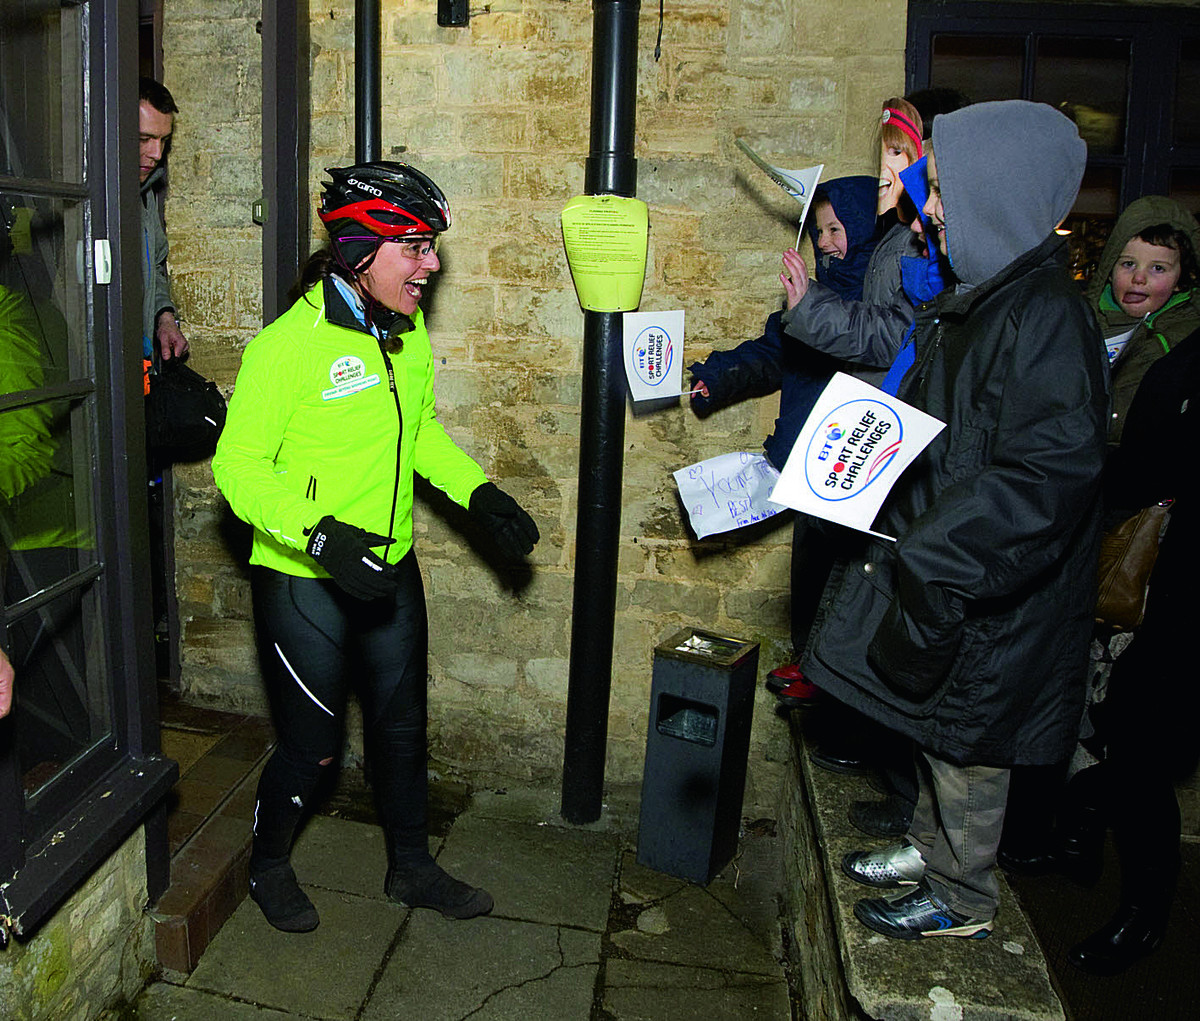 Davina McCall is greeted by cheering children at Killingworth Castle, Wootton, after she arrived for a stop during her Sport Relief challenge